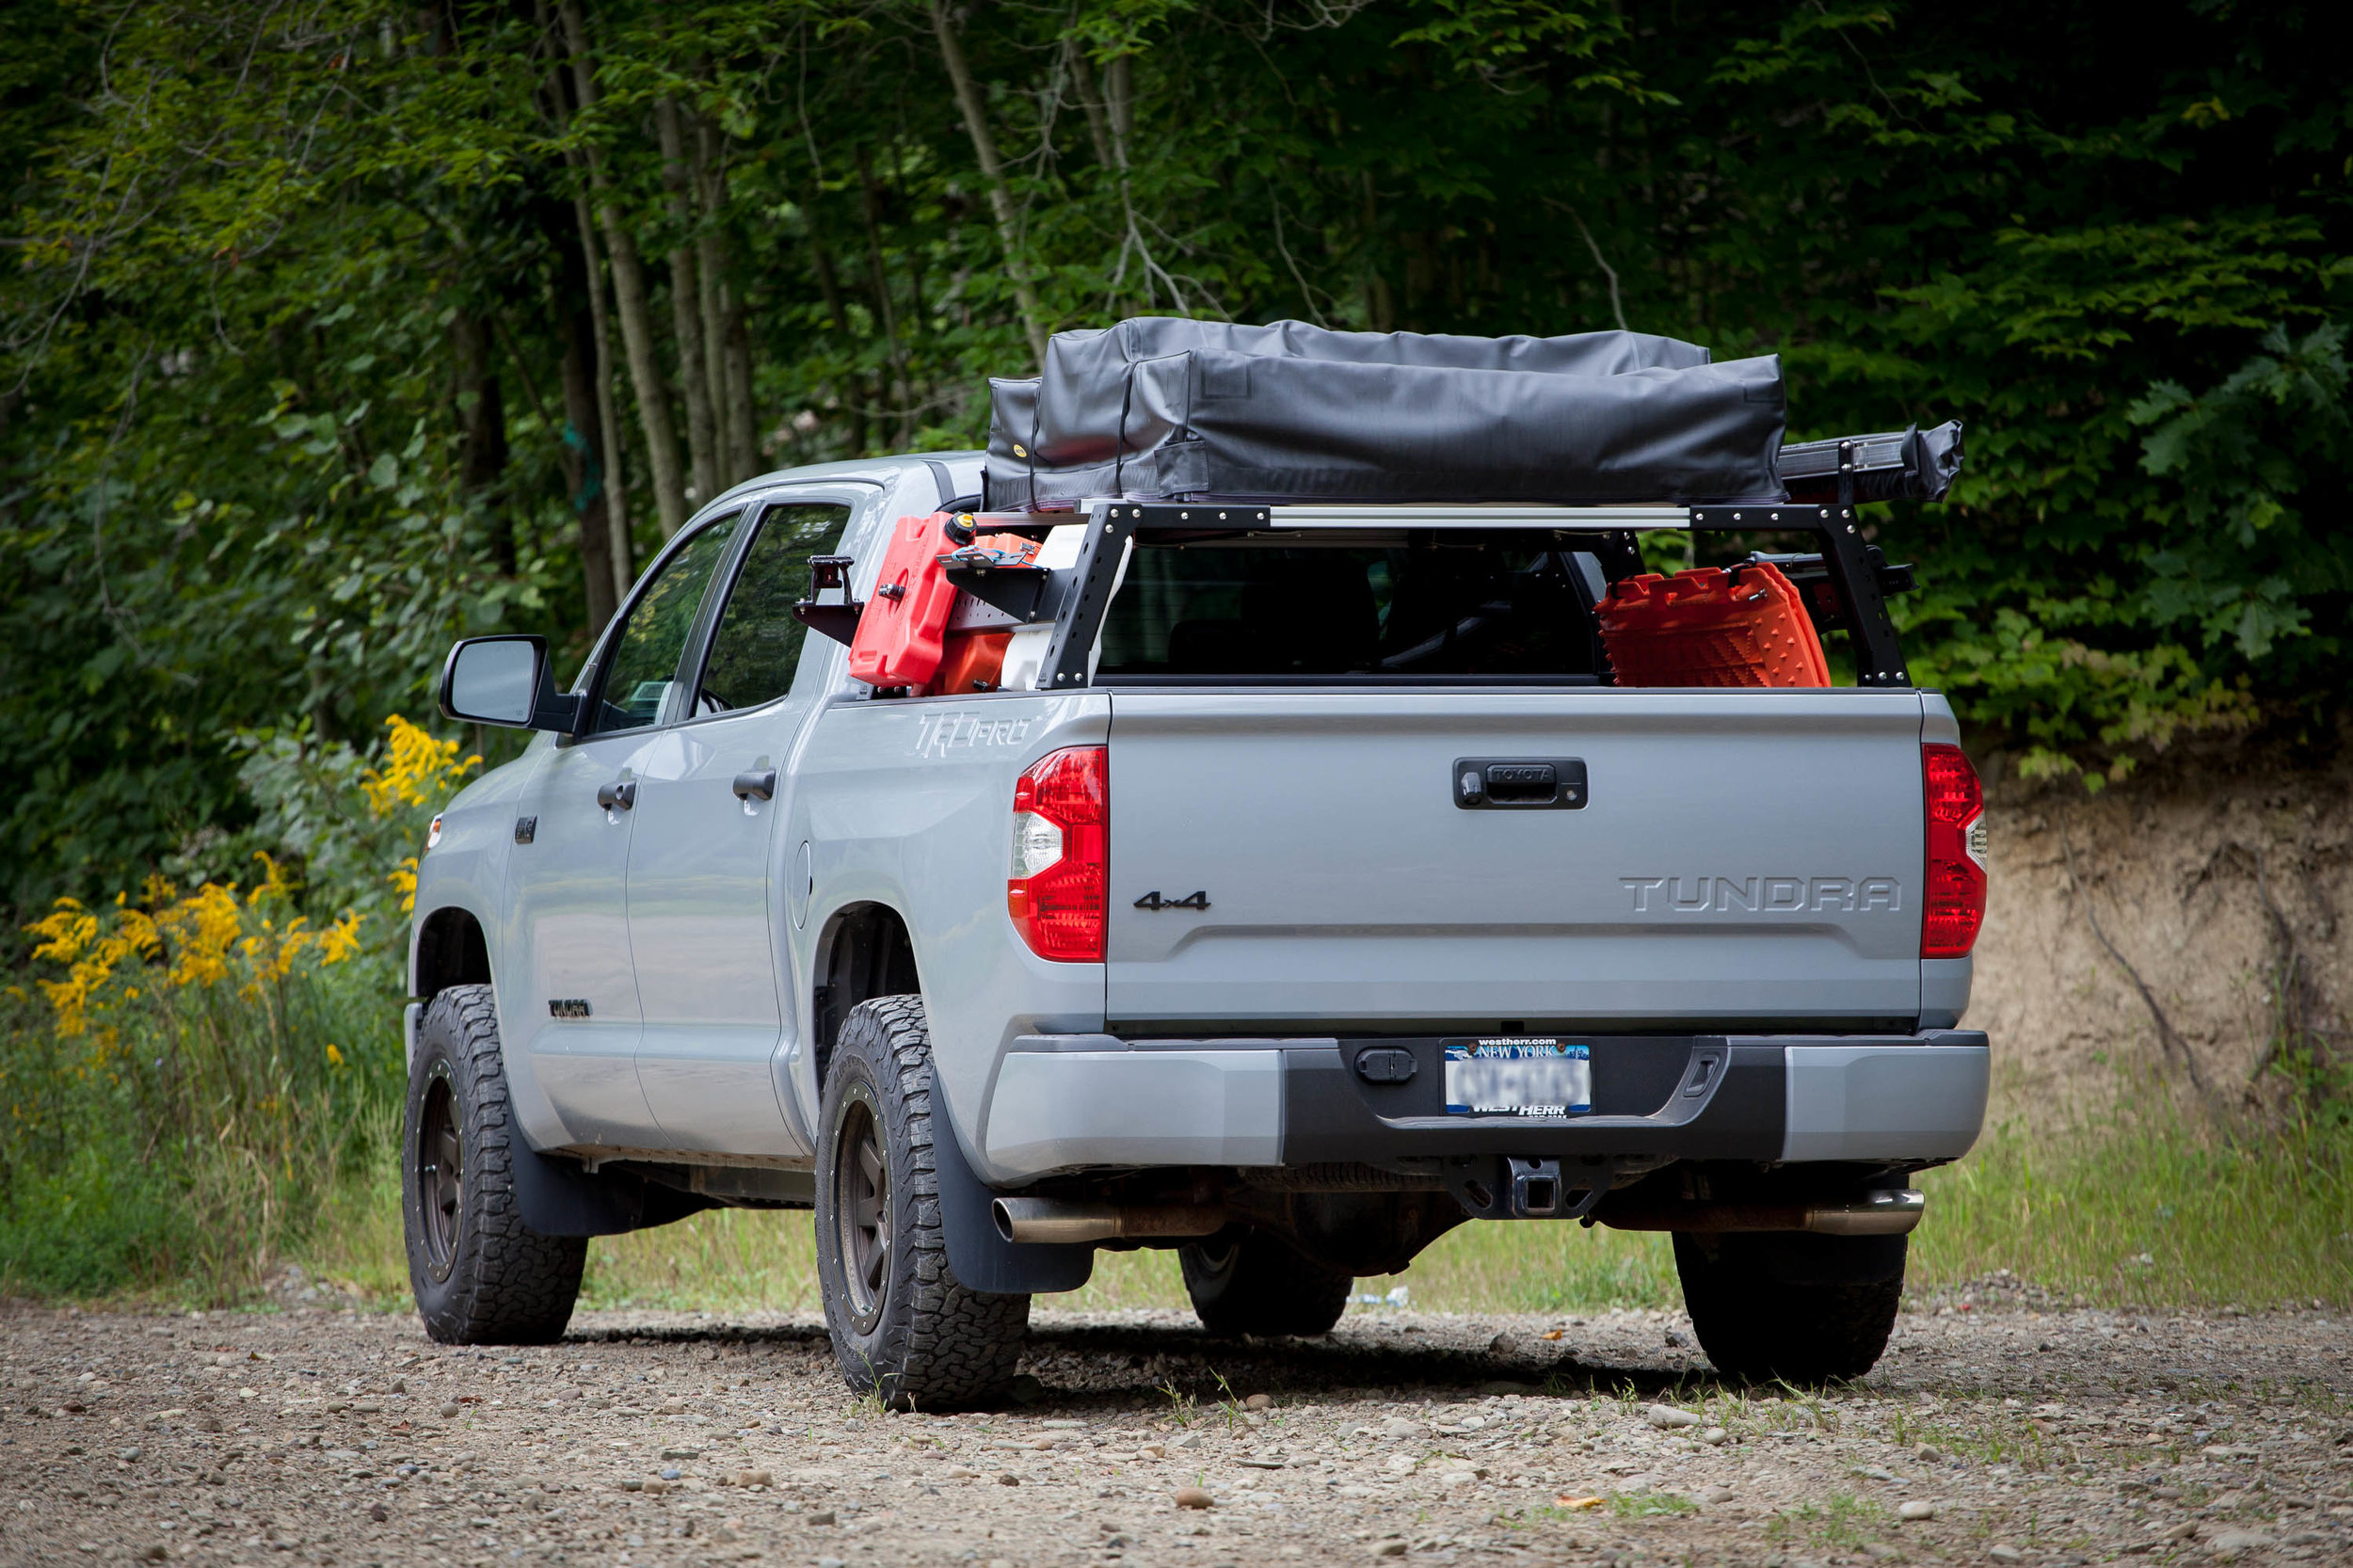 Max Modular Steel Max 14 High Bed Rack Fits All Toyota Ford Chevy Ram And Nissan Trucks Max Modular Truck Bed Racks